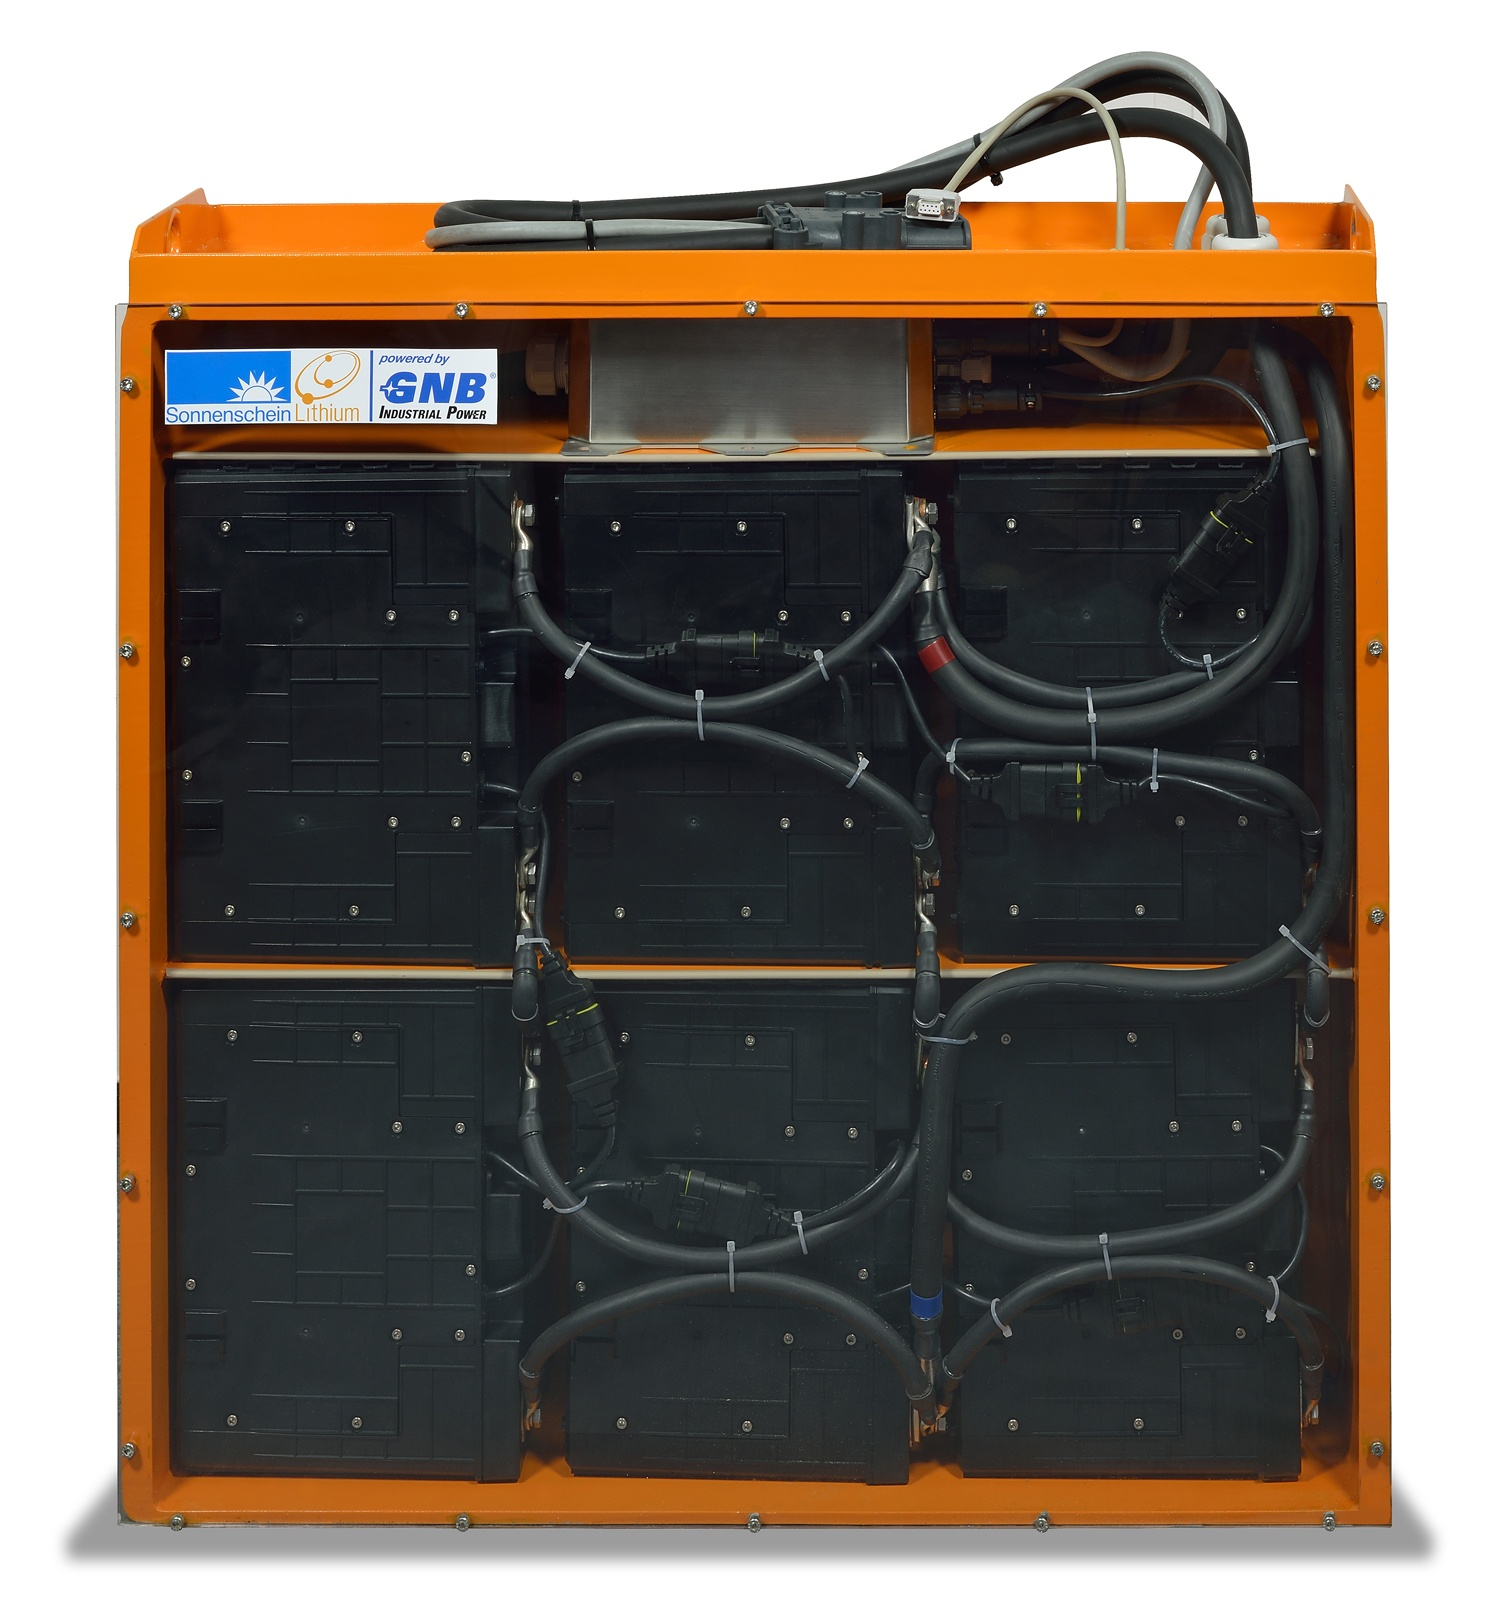 How Businesses are Embracing the Future with Lithium-Ion Forklift Batteries